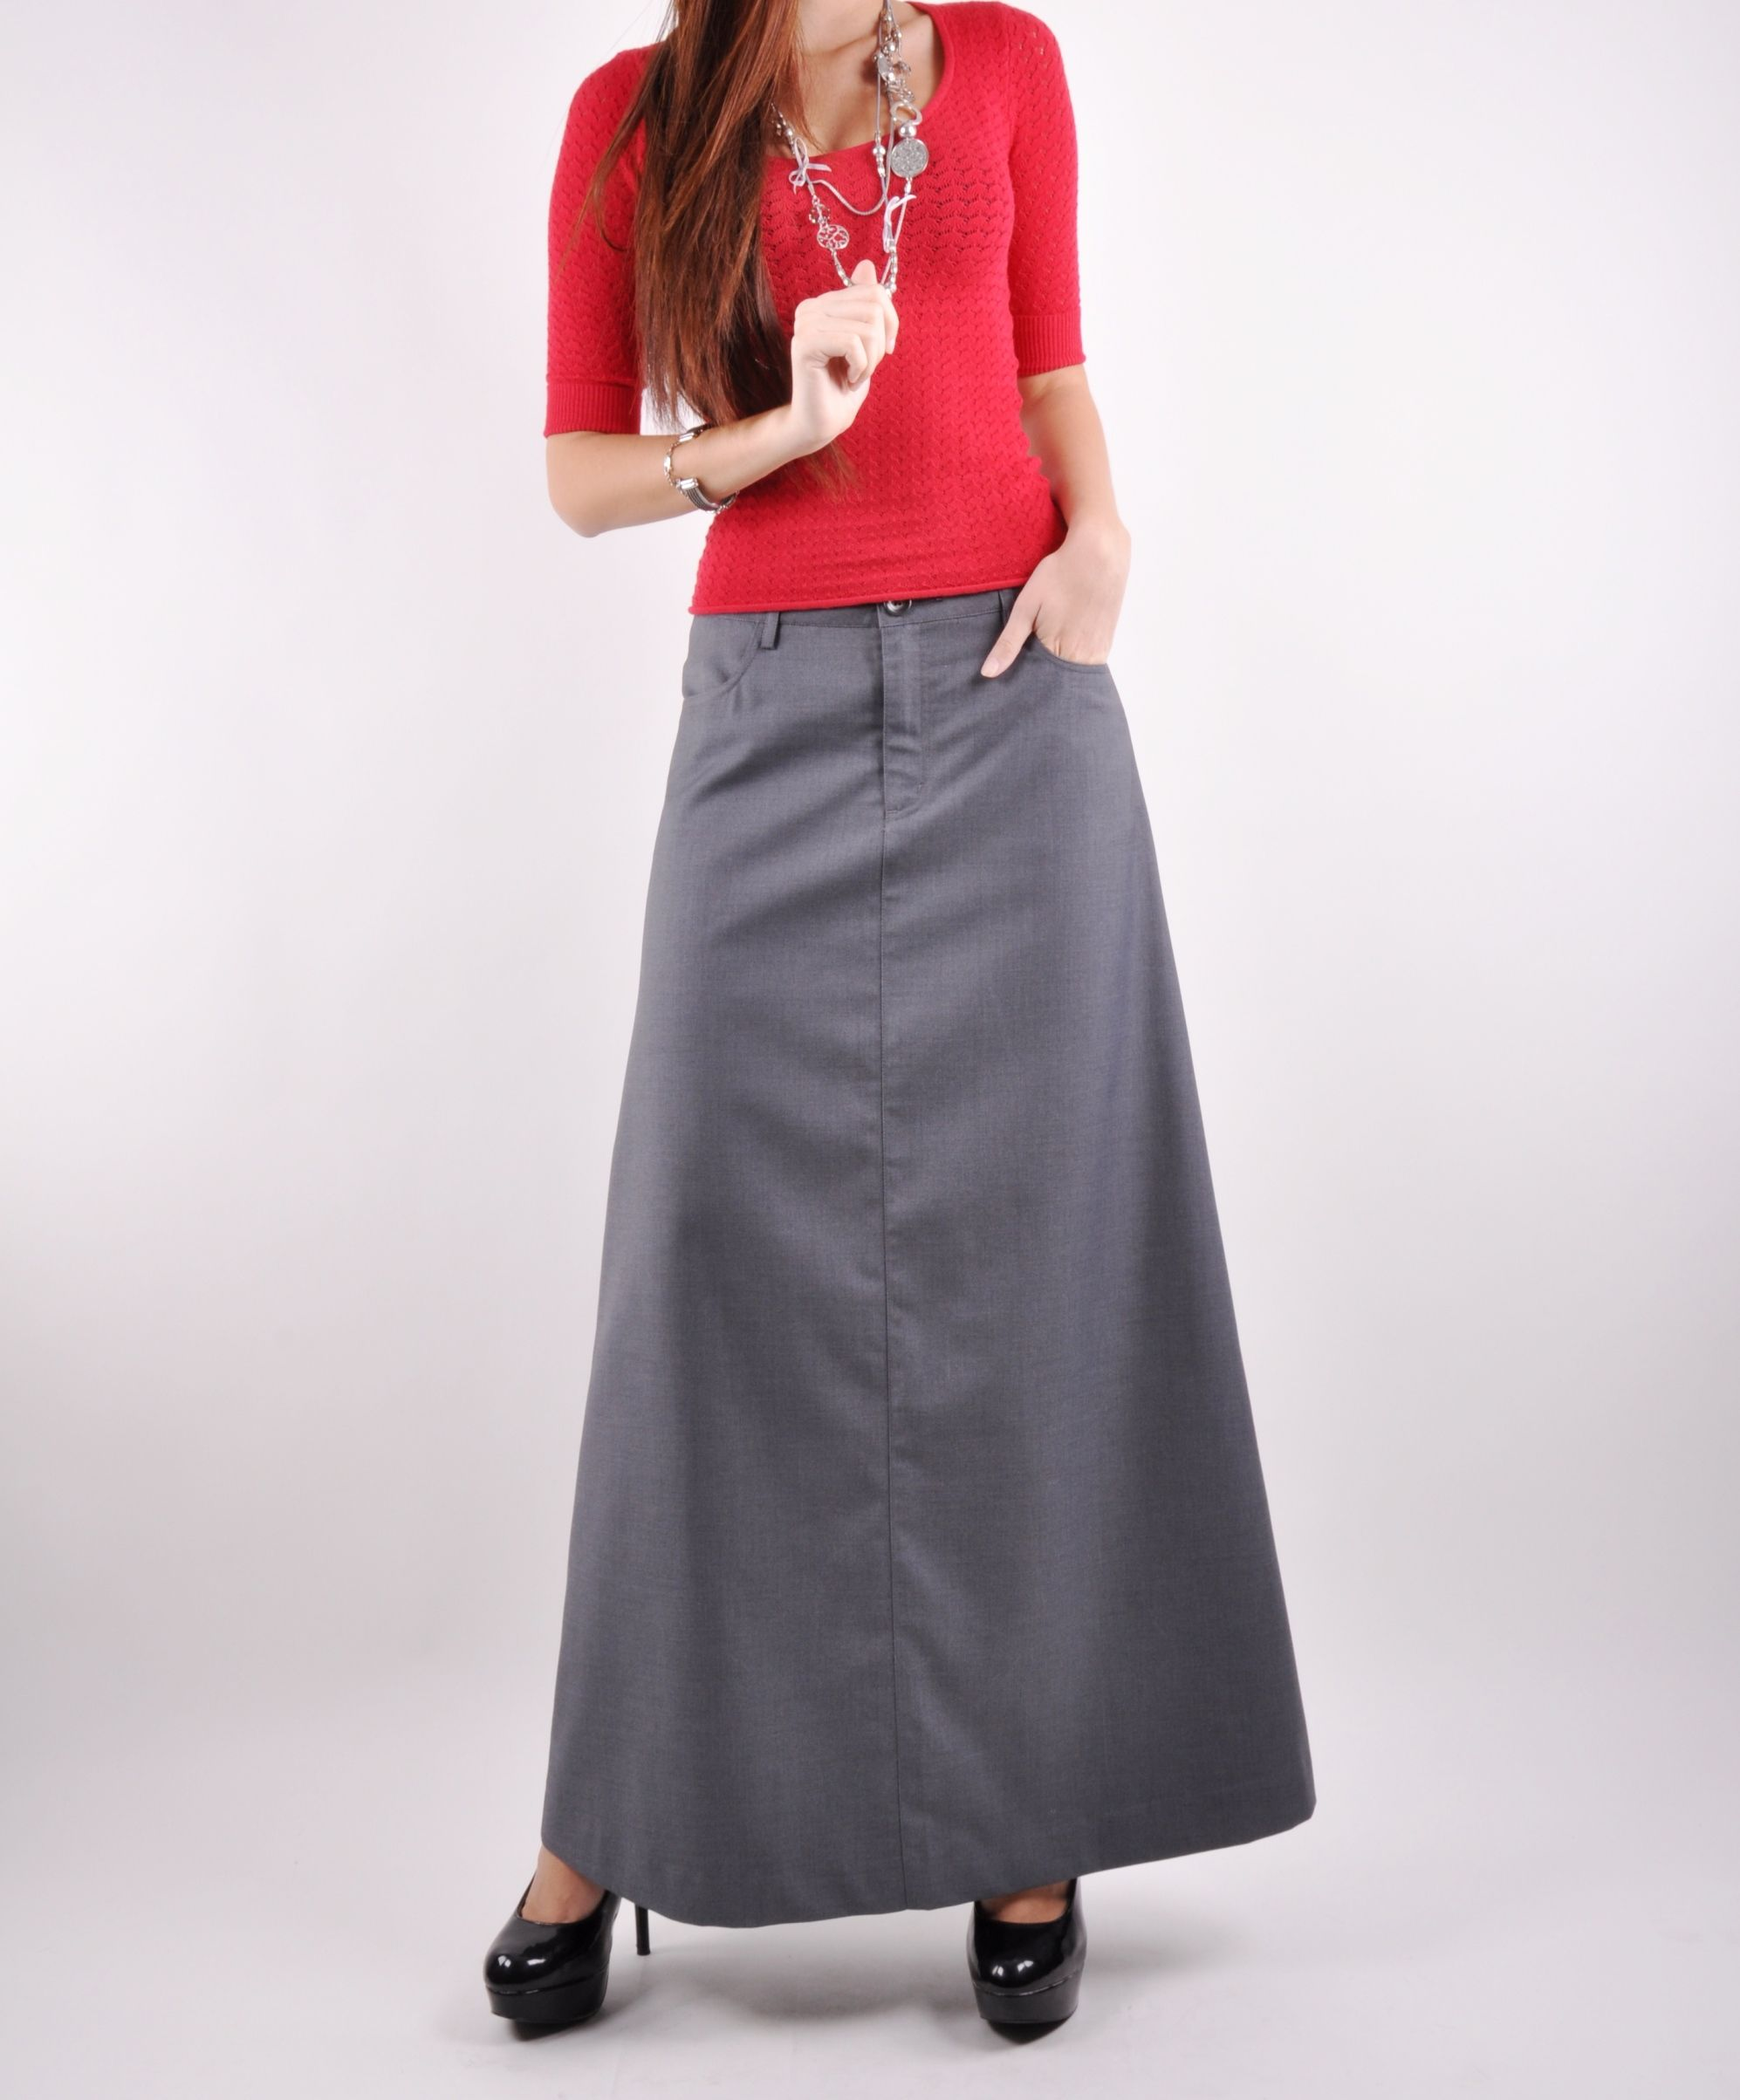 Plain Gray Long Skirt